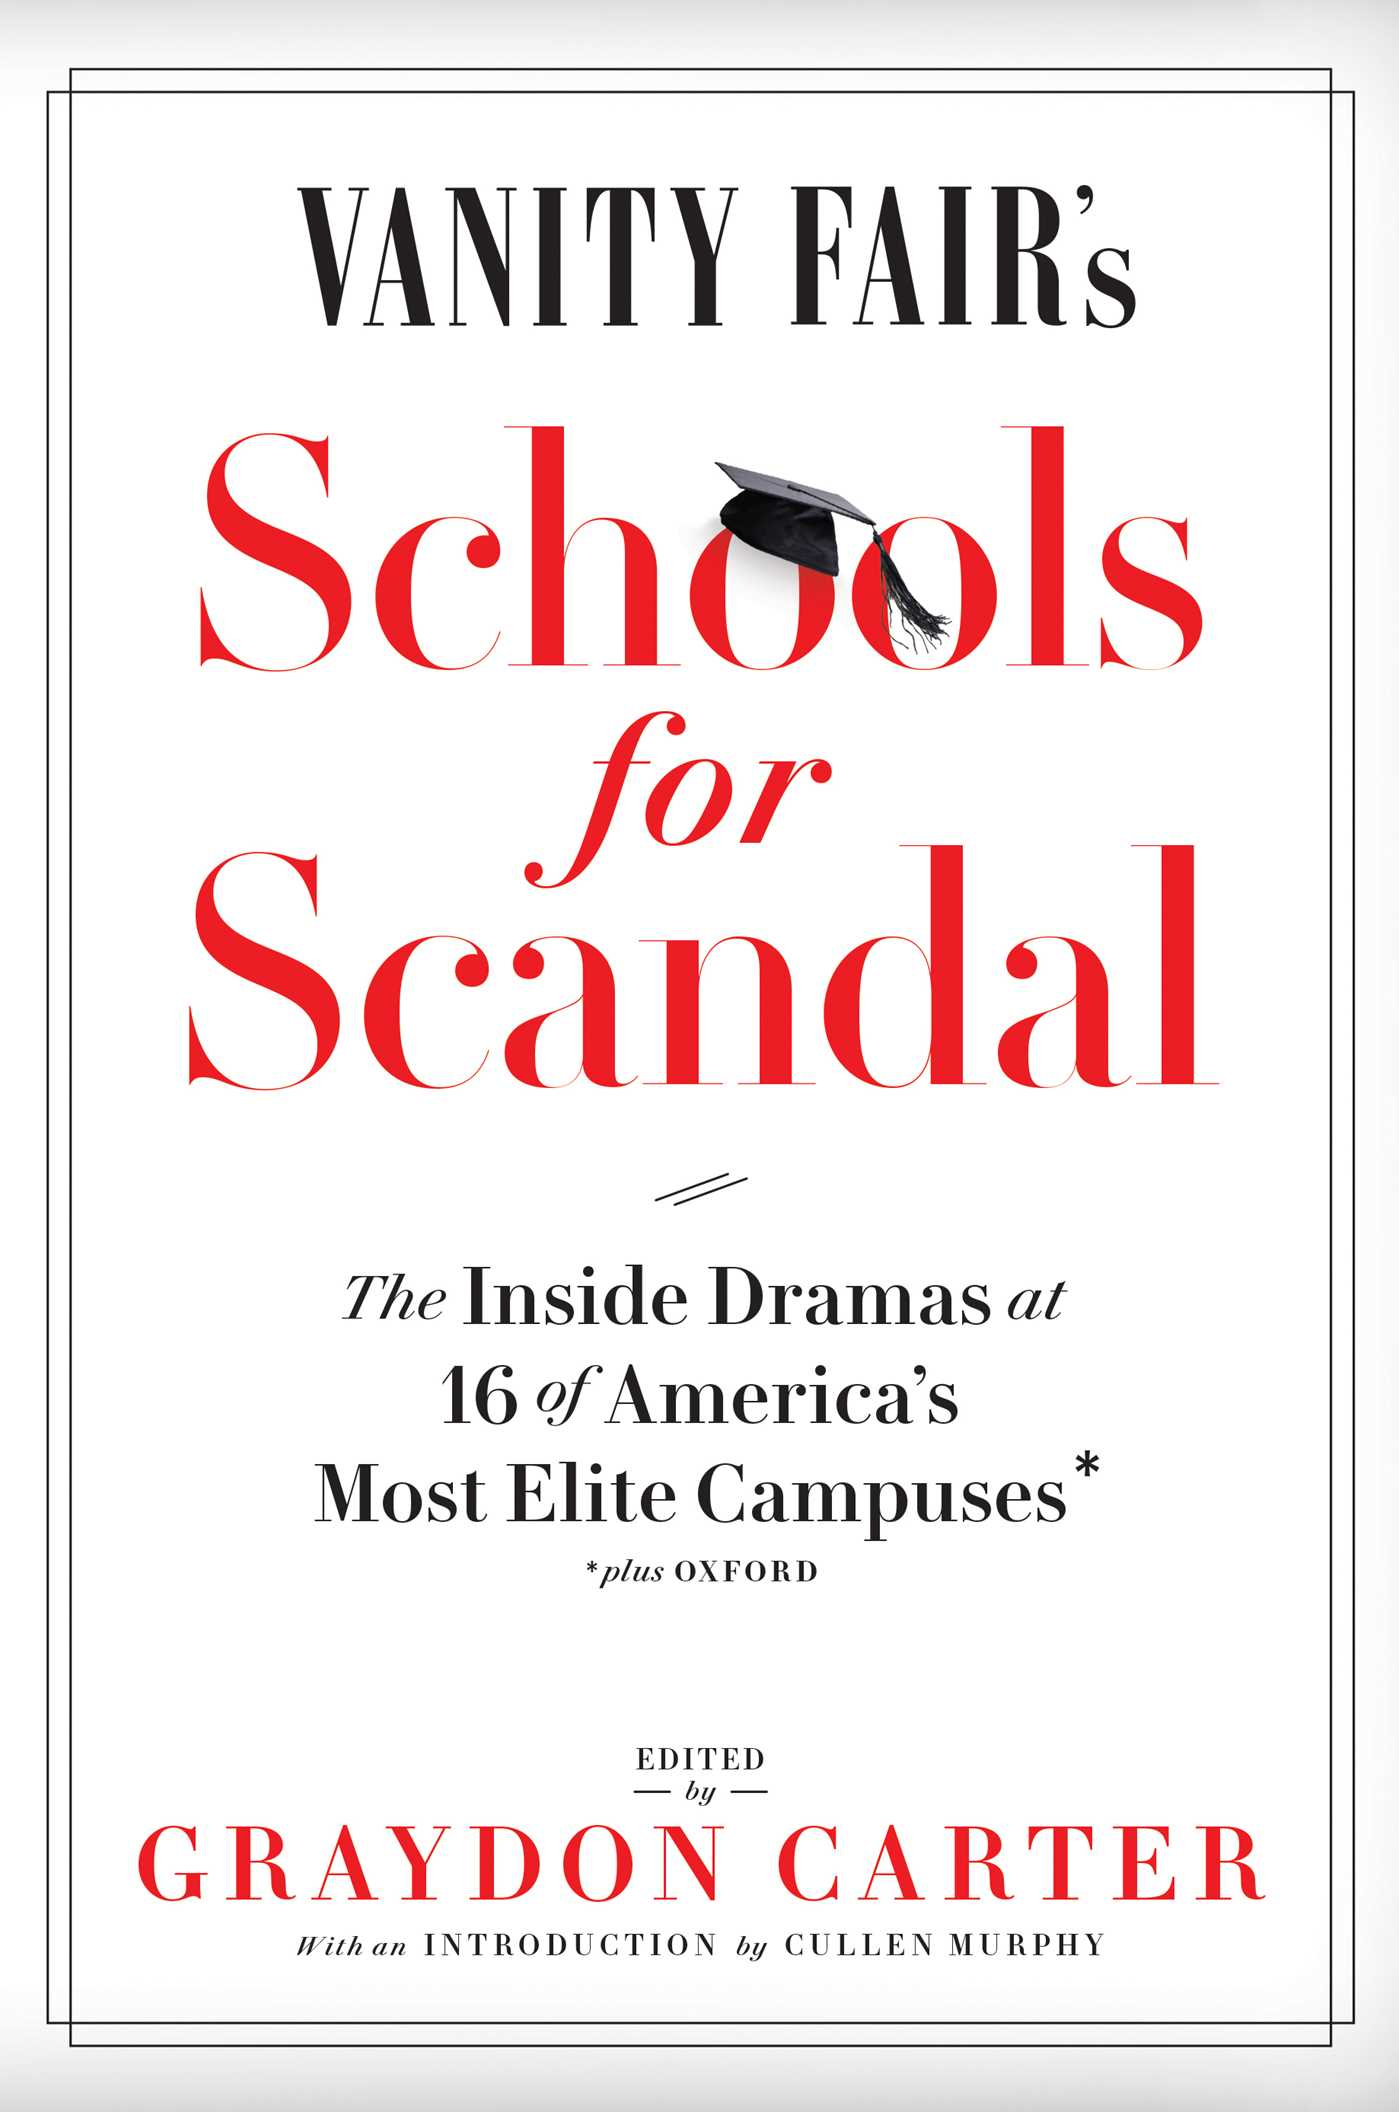 Vanity fairs schools for scandal 9781501173745 hr